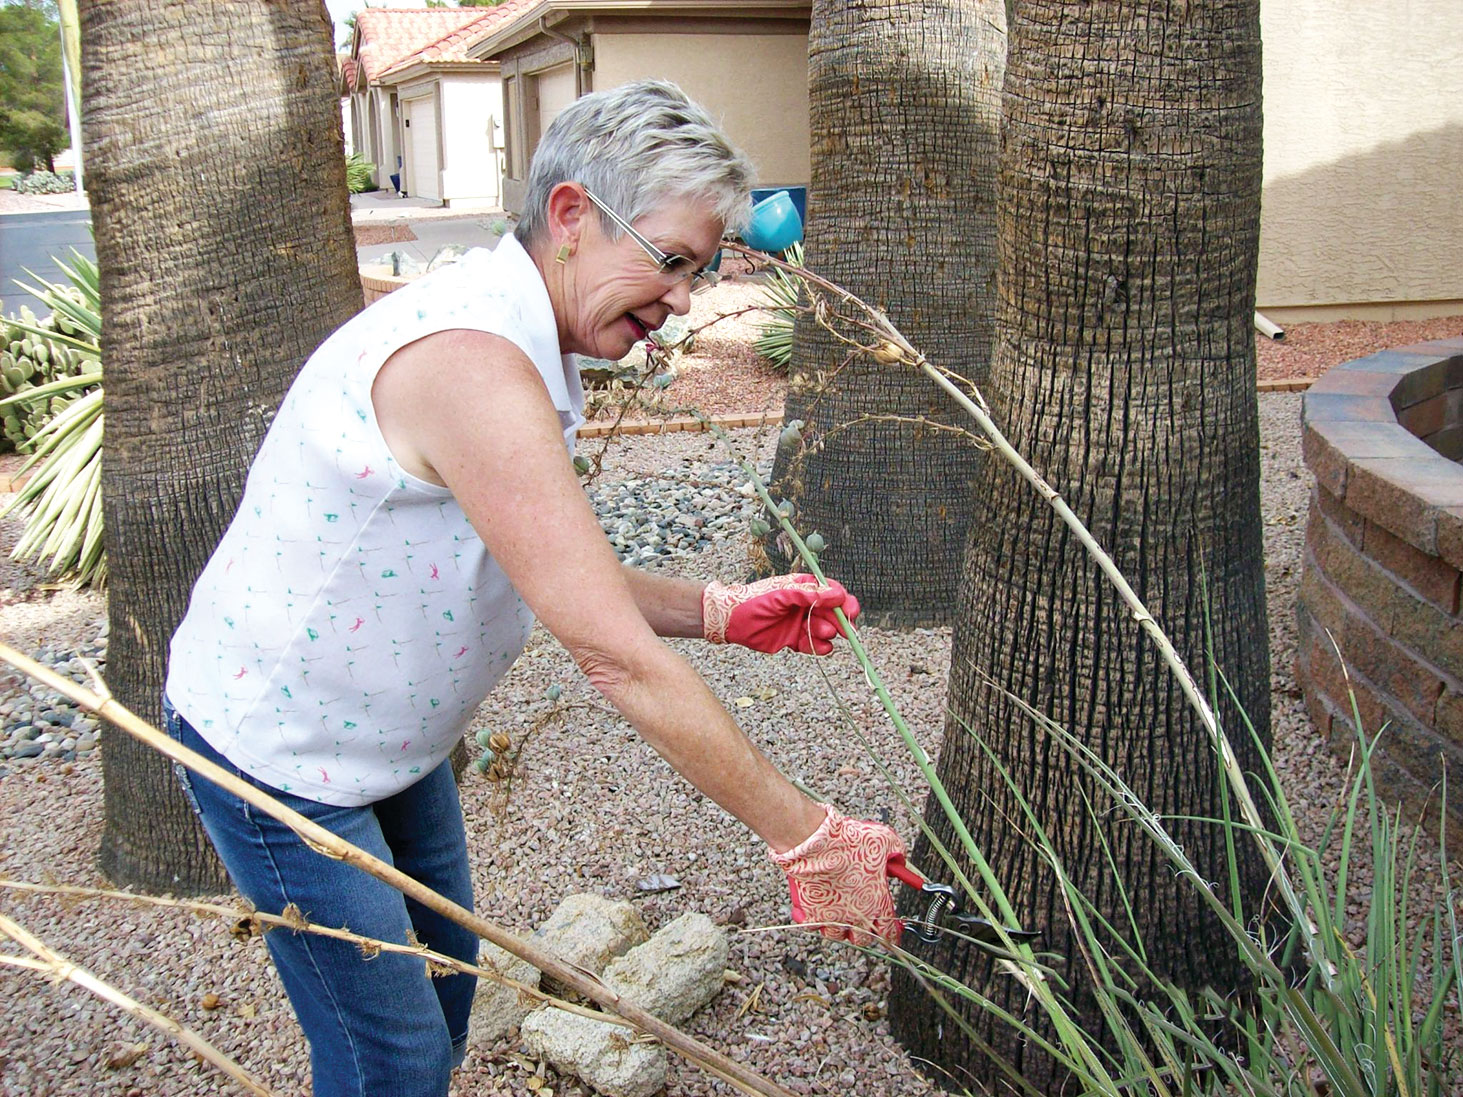 President Alice Whistler trimming her Red Yucca. This plant produces a round star-like seedpod after blooming. The small black seeds will scatter in the wind, so Alice trims them or she would have a yard filled with Yucca.